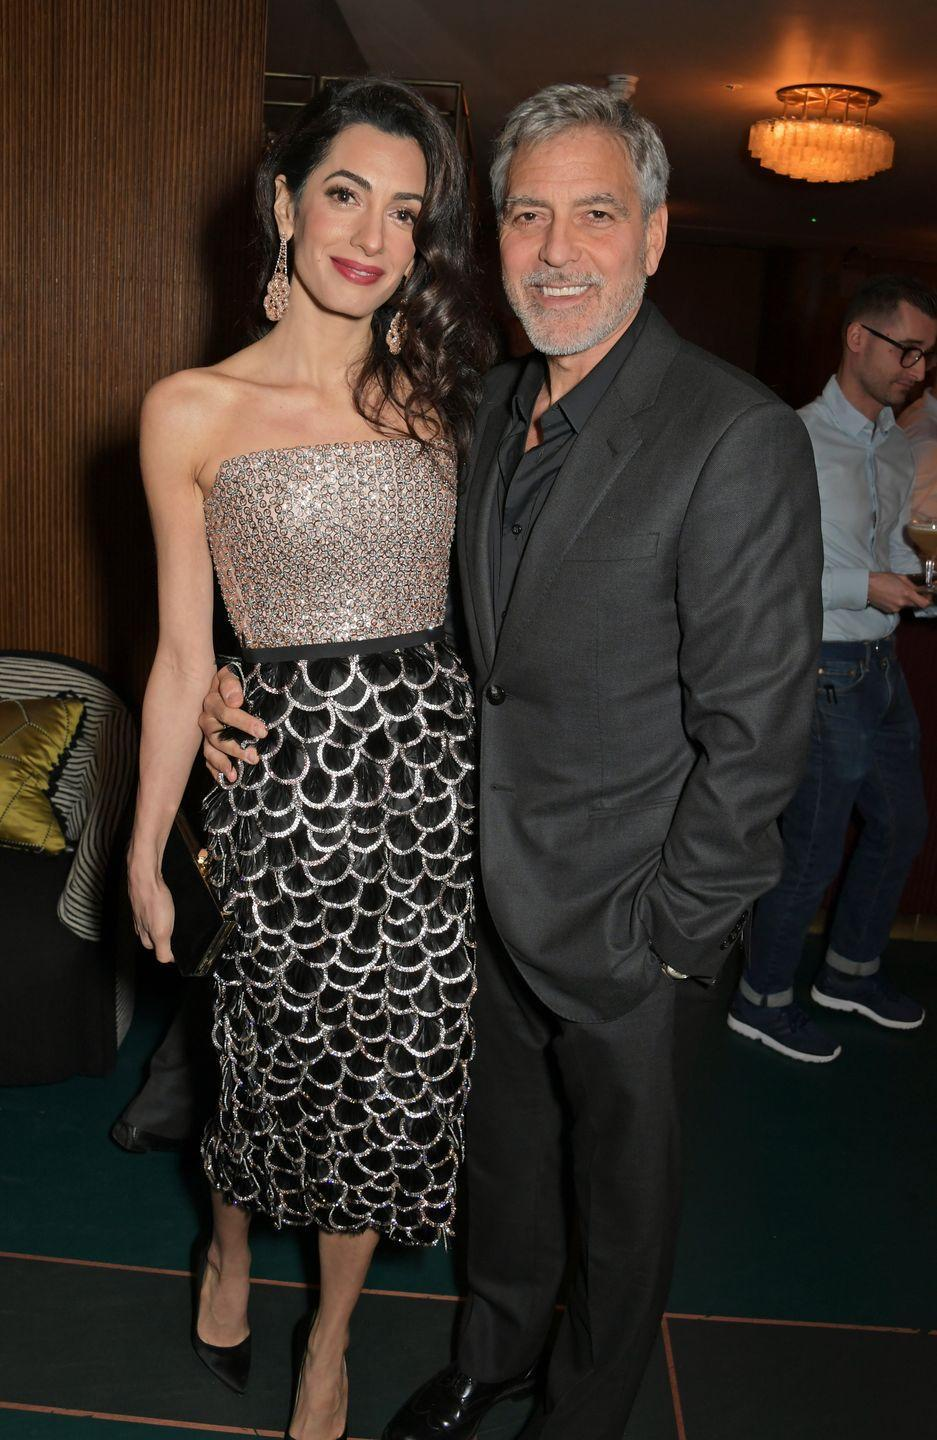 """<p>The actor proved them wrong by marrying Amal Alamuddin (now Clooney), an attorney who specializes in international law and human rights, in 2014. When asked about her on <a href=""""https://people.com/movies/george-clooney-met-amal-clooney-without-ever-leaving-home/"""" rel=""""nofollow noopener"""" target=""""_blank"""" data-ylk=""""slk:My Next Guest Needs No Introduction with David Letterman"""" class=""""link rapid-noclick-resp""""><em>My </em><em>Next Guest Needs No Introduction with David Letterman</em></a>, he said, """"I met someone who I would absolutely trade my life for. I met someone, who, her life meant more to me than my life. I had never had that experience before.""""</p>"""